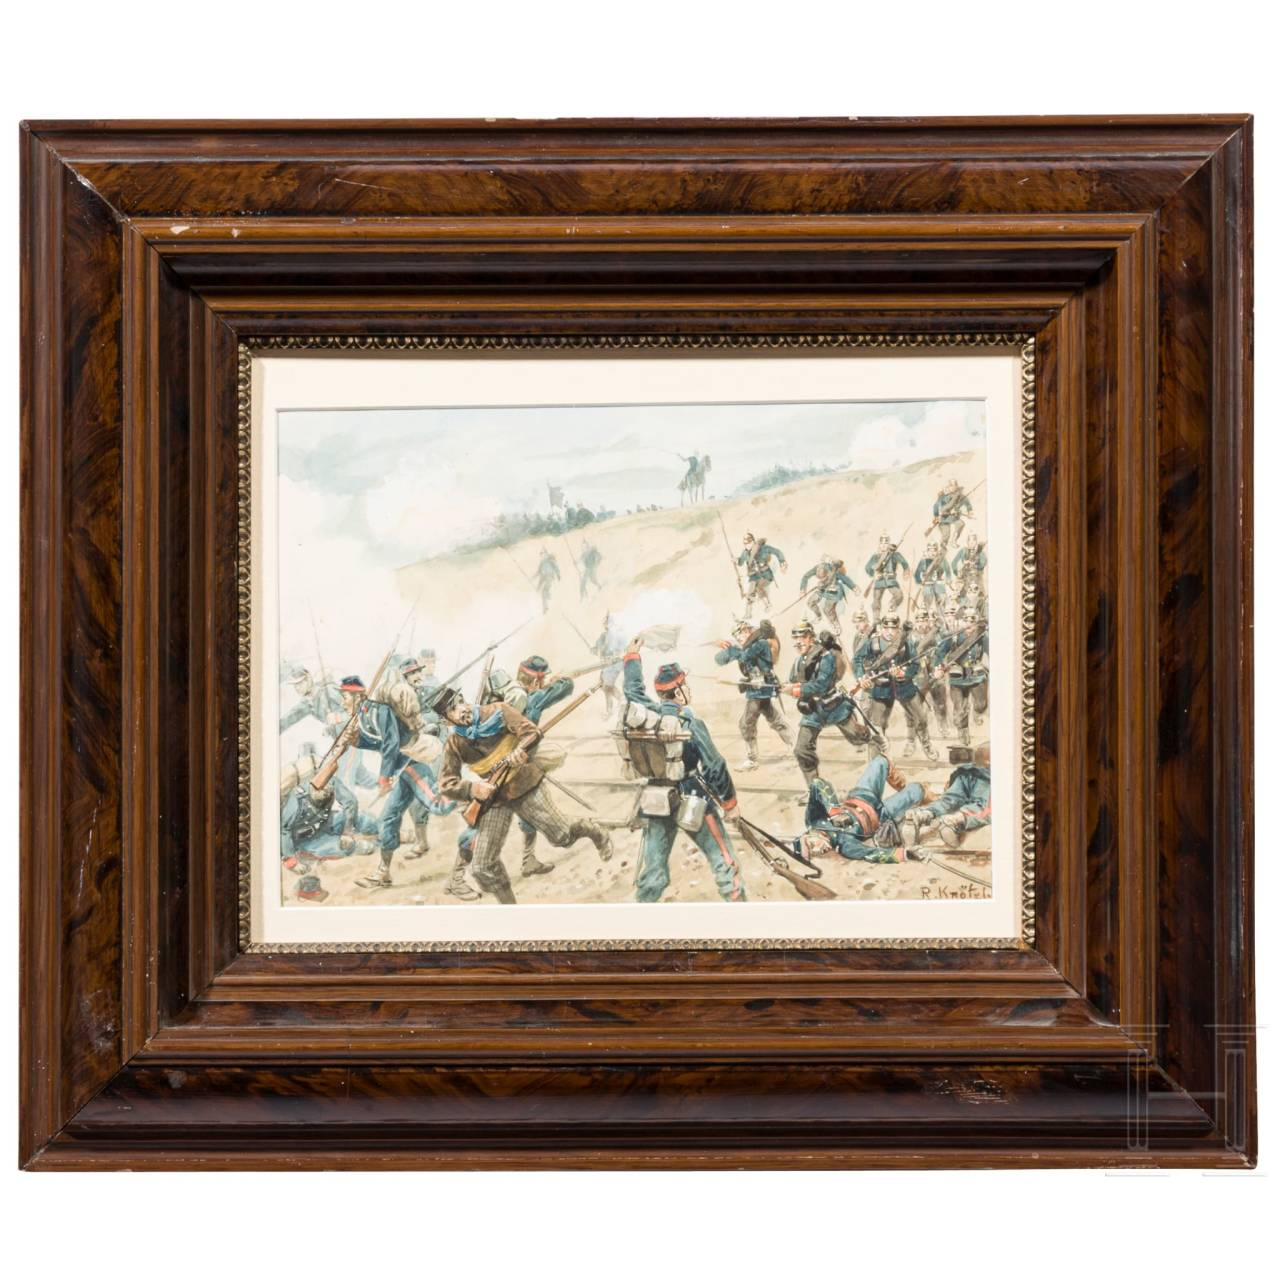 "Richard Knötel (1857 - 1914) - a watercolour ""The Baden soldiers at Nuits on 18 December 1870"